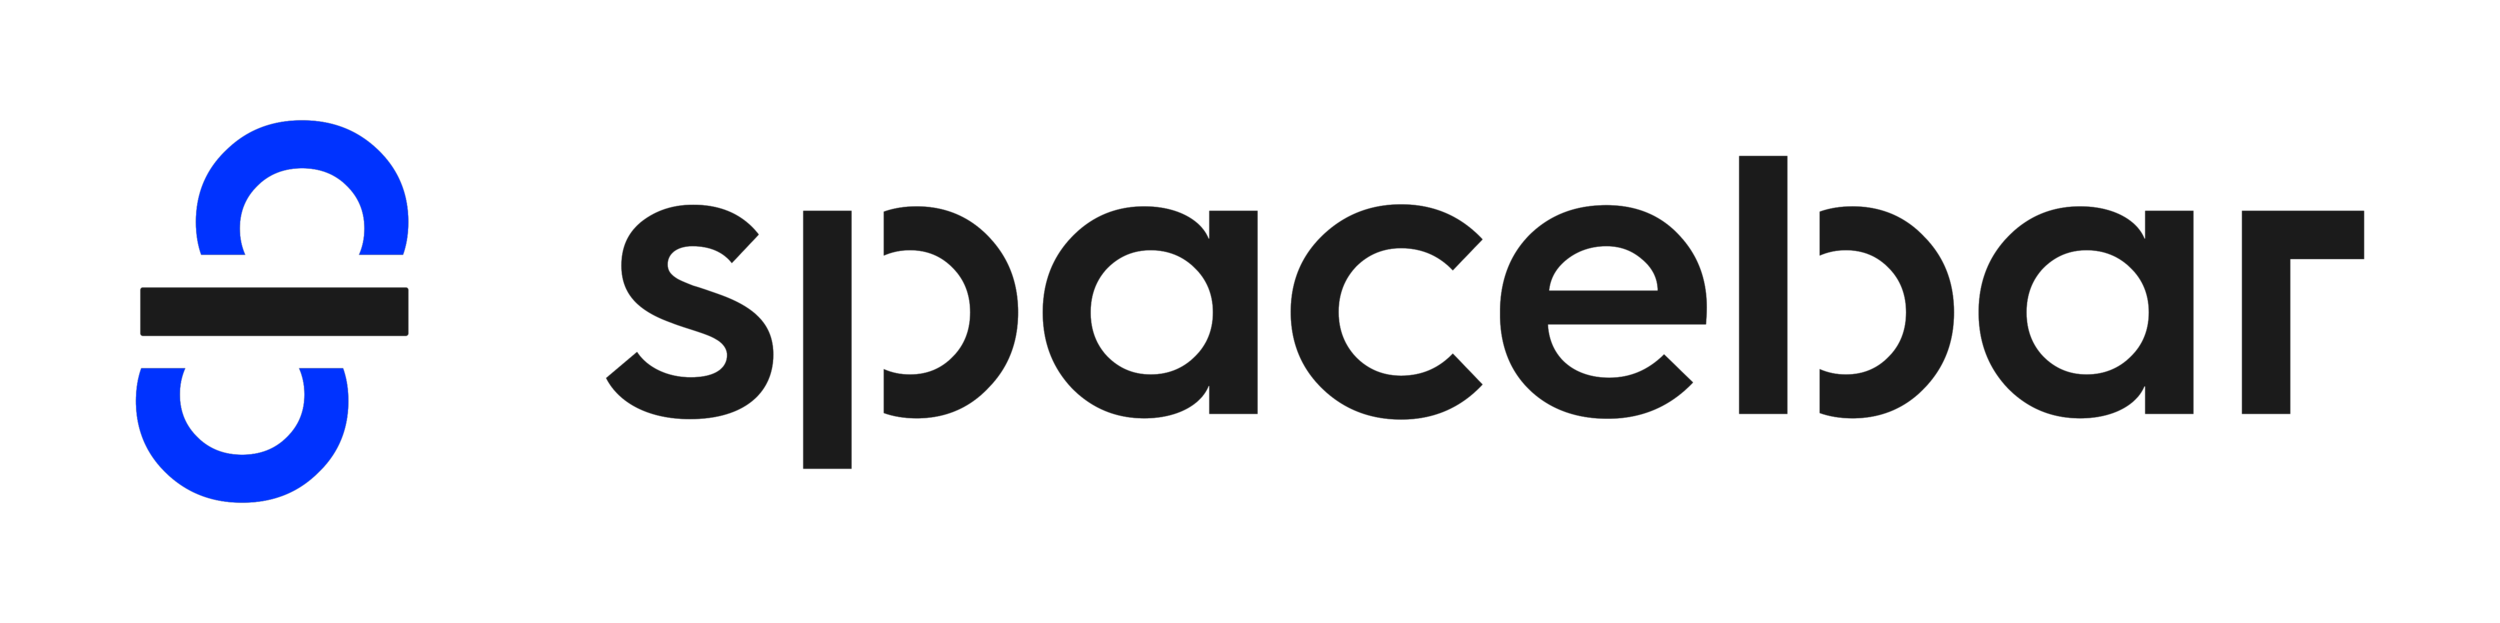 Spacebar Logo PNG copy.png